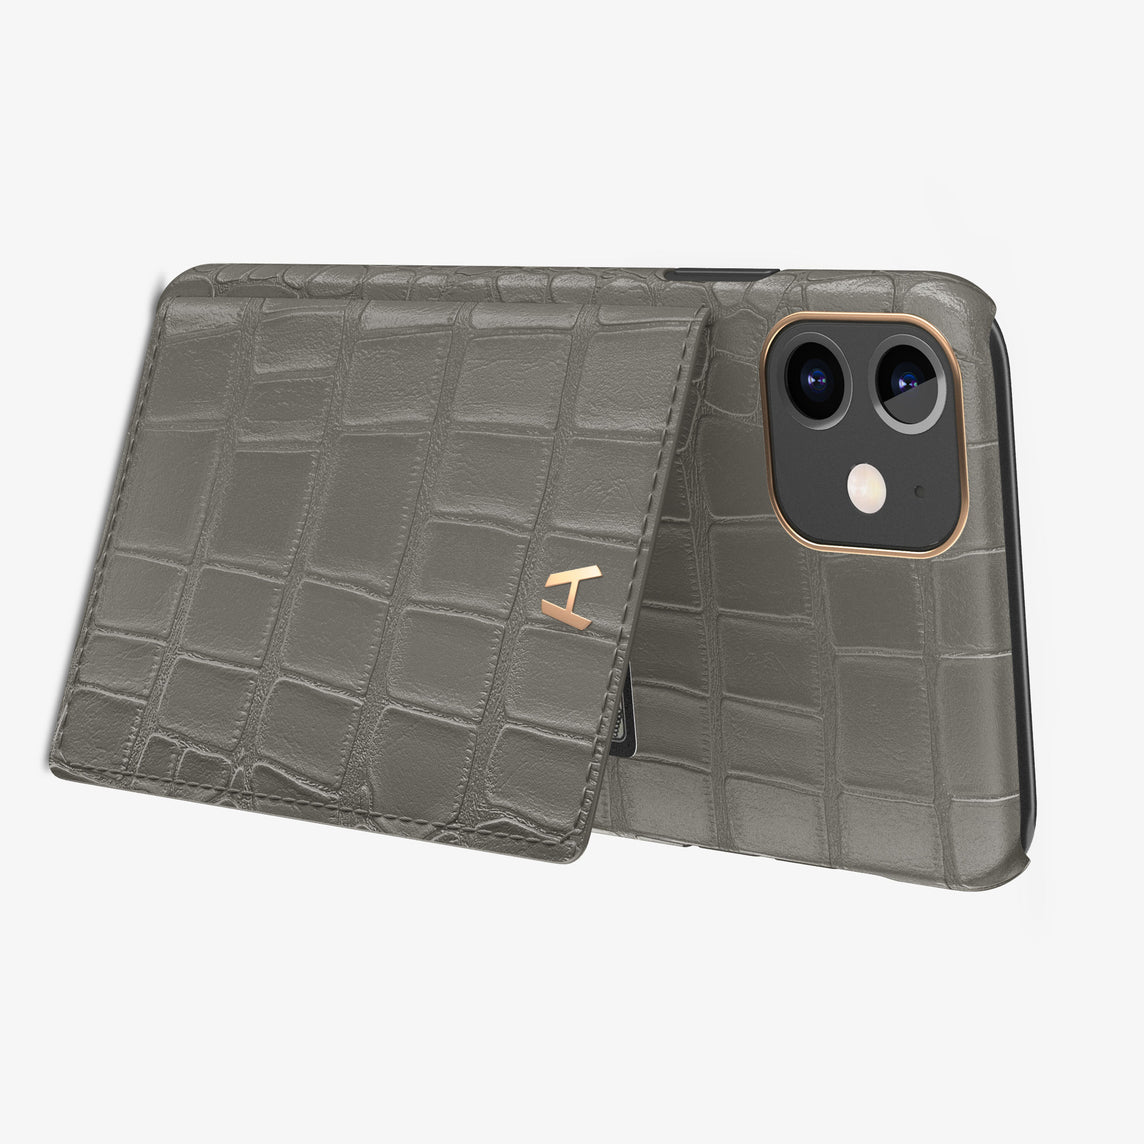 Alligator Card Holder Flap Case iPhone 11 | Pearl Grey - Rose Gold